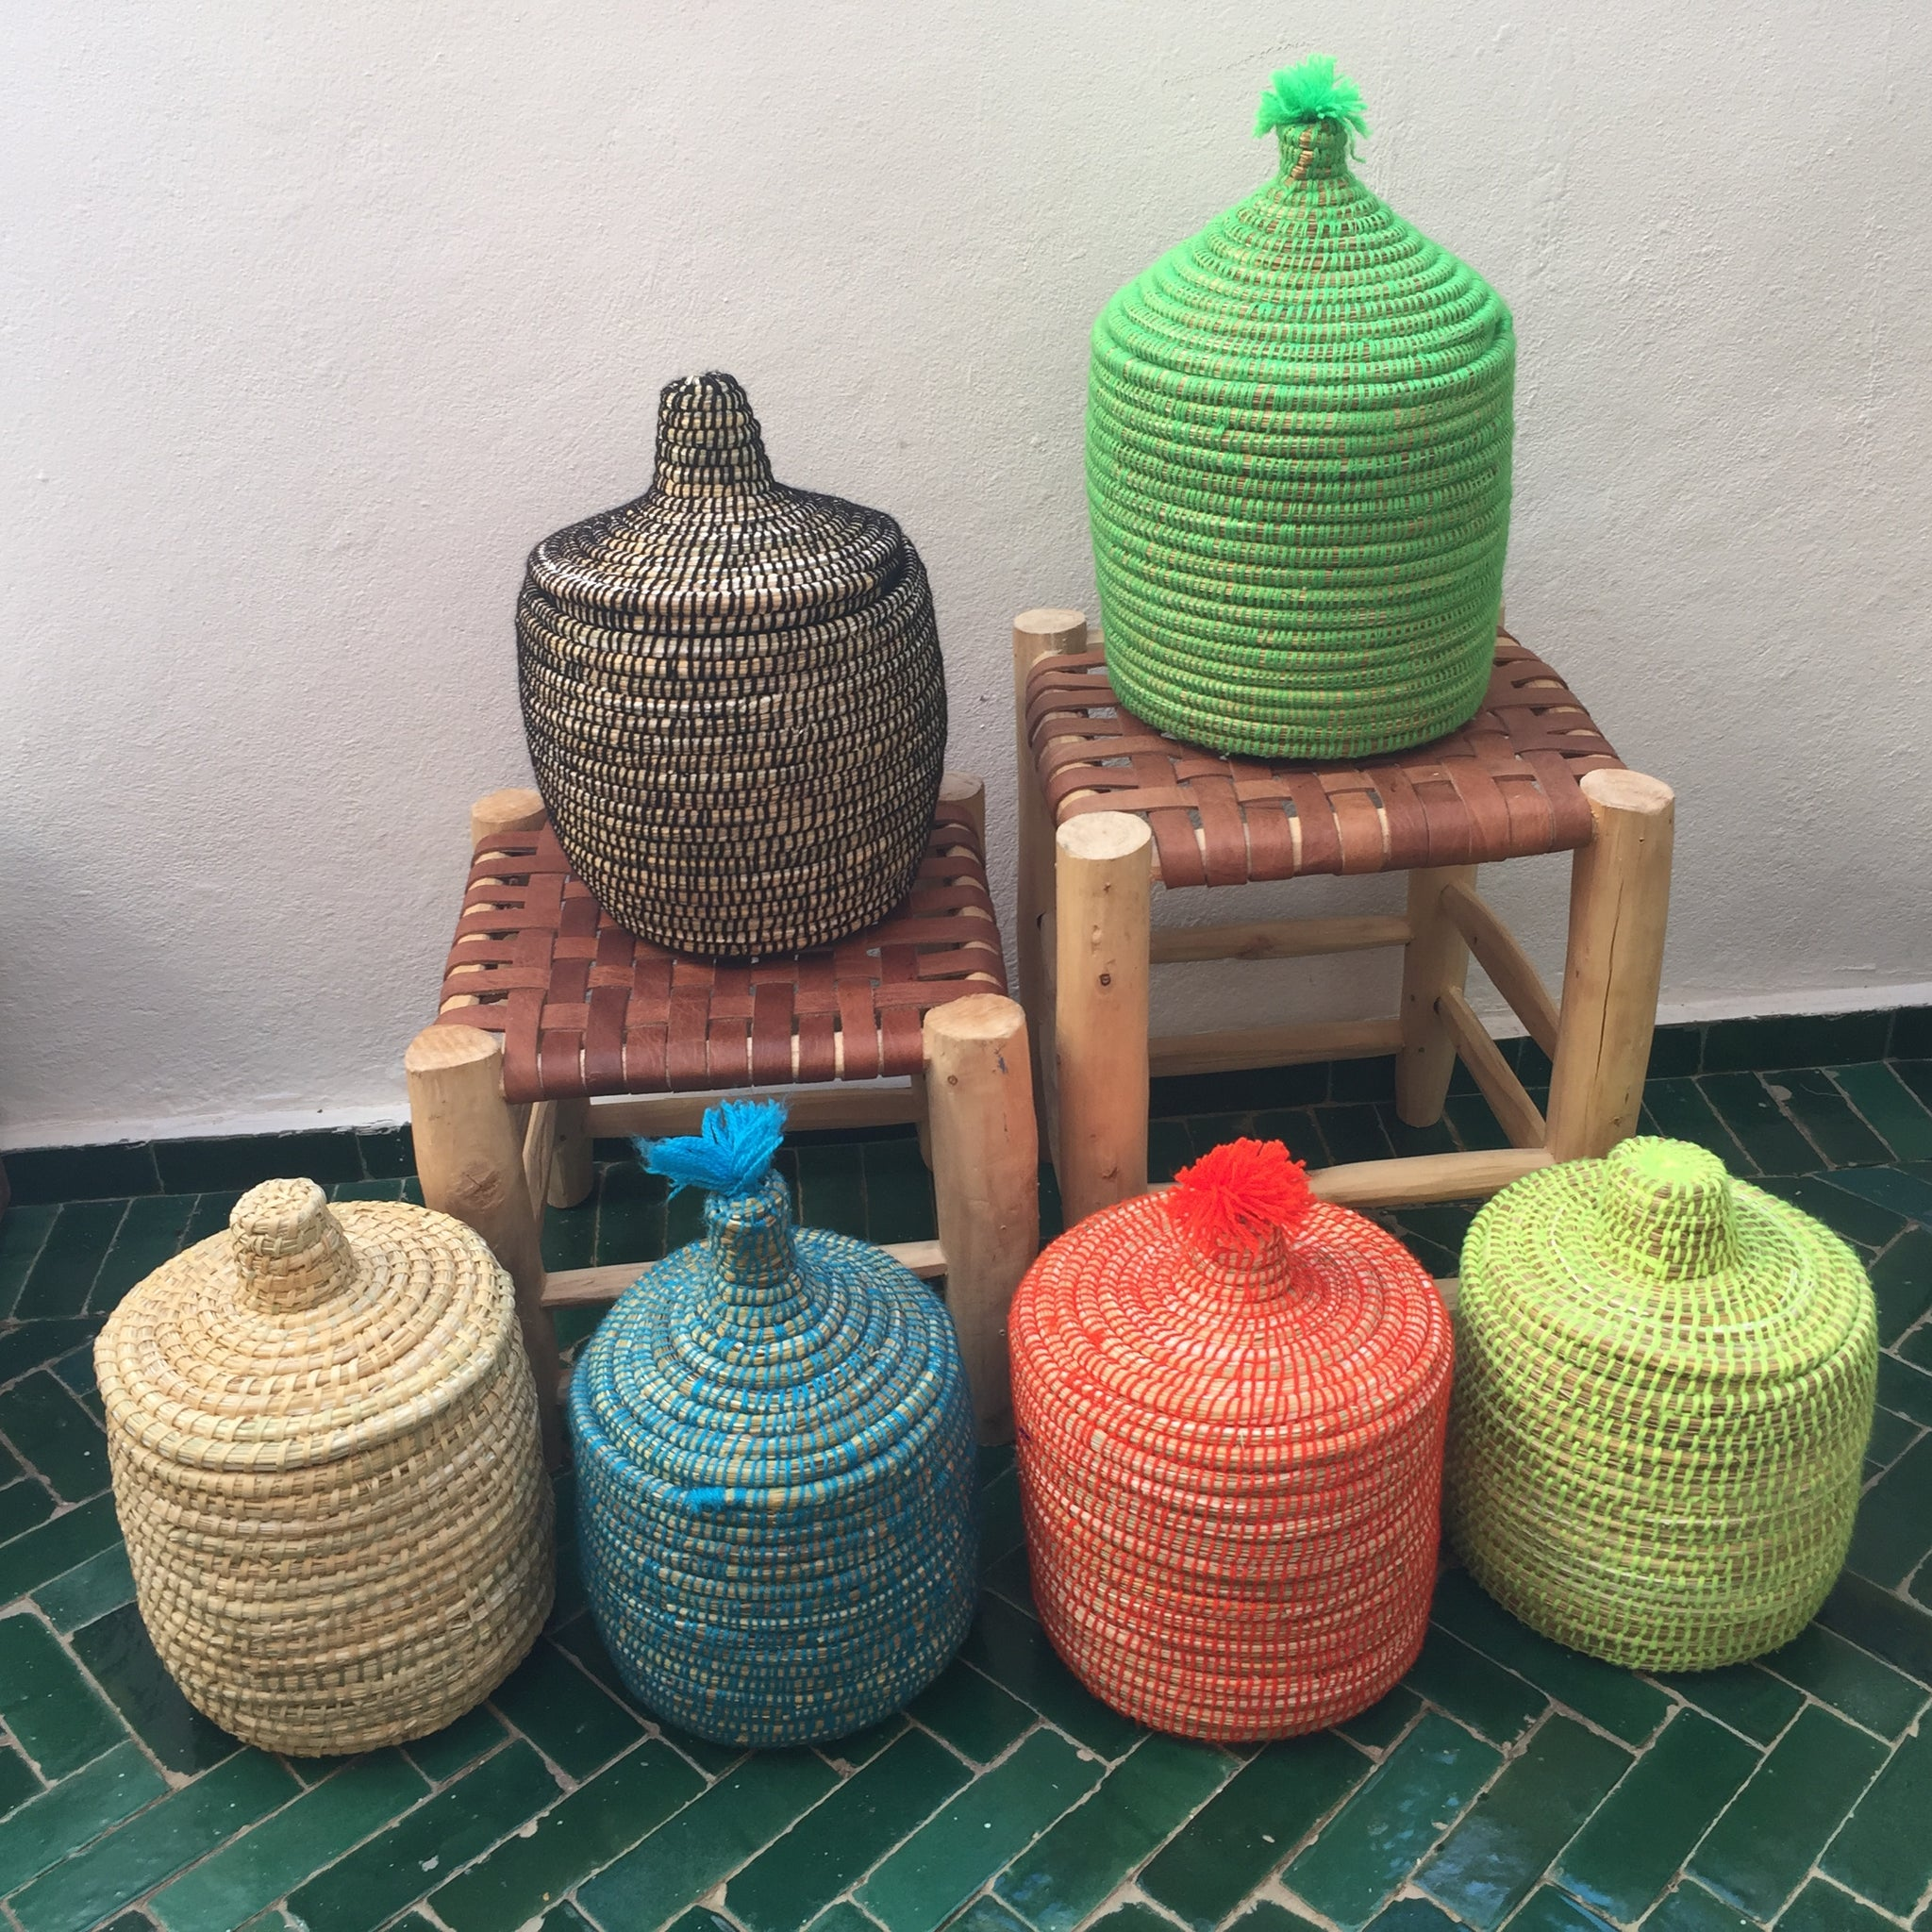 Colored Handwoven Baskets